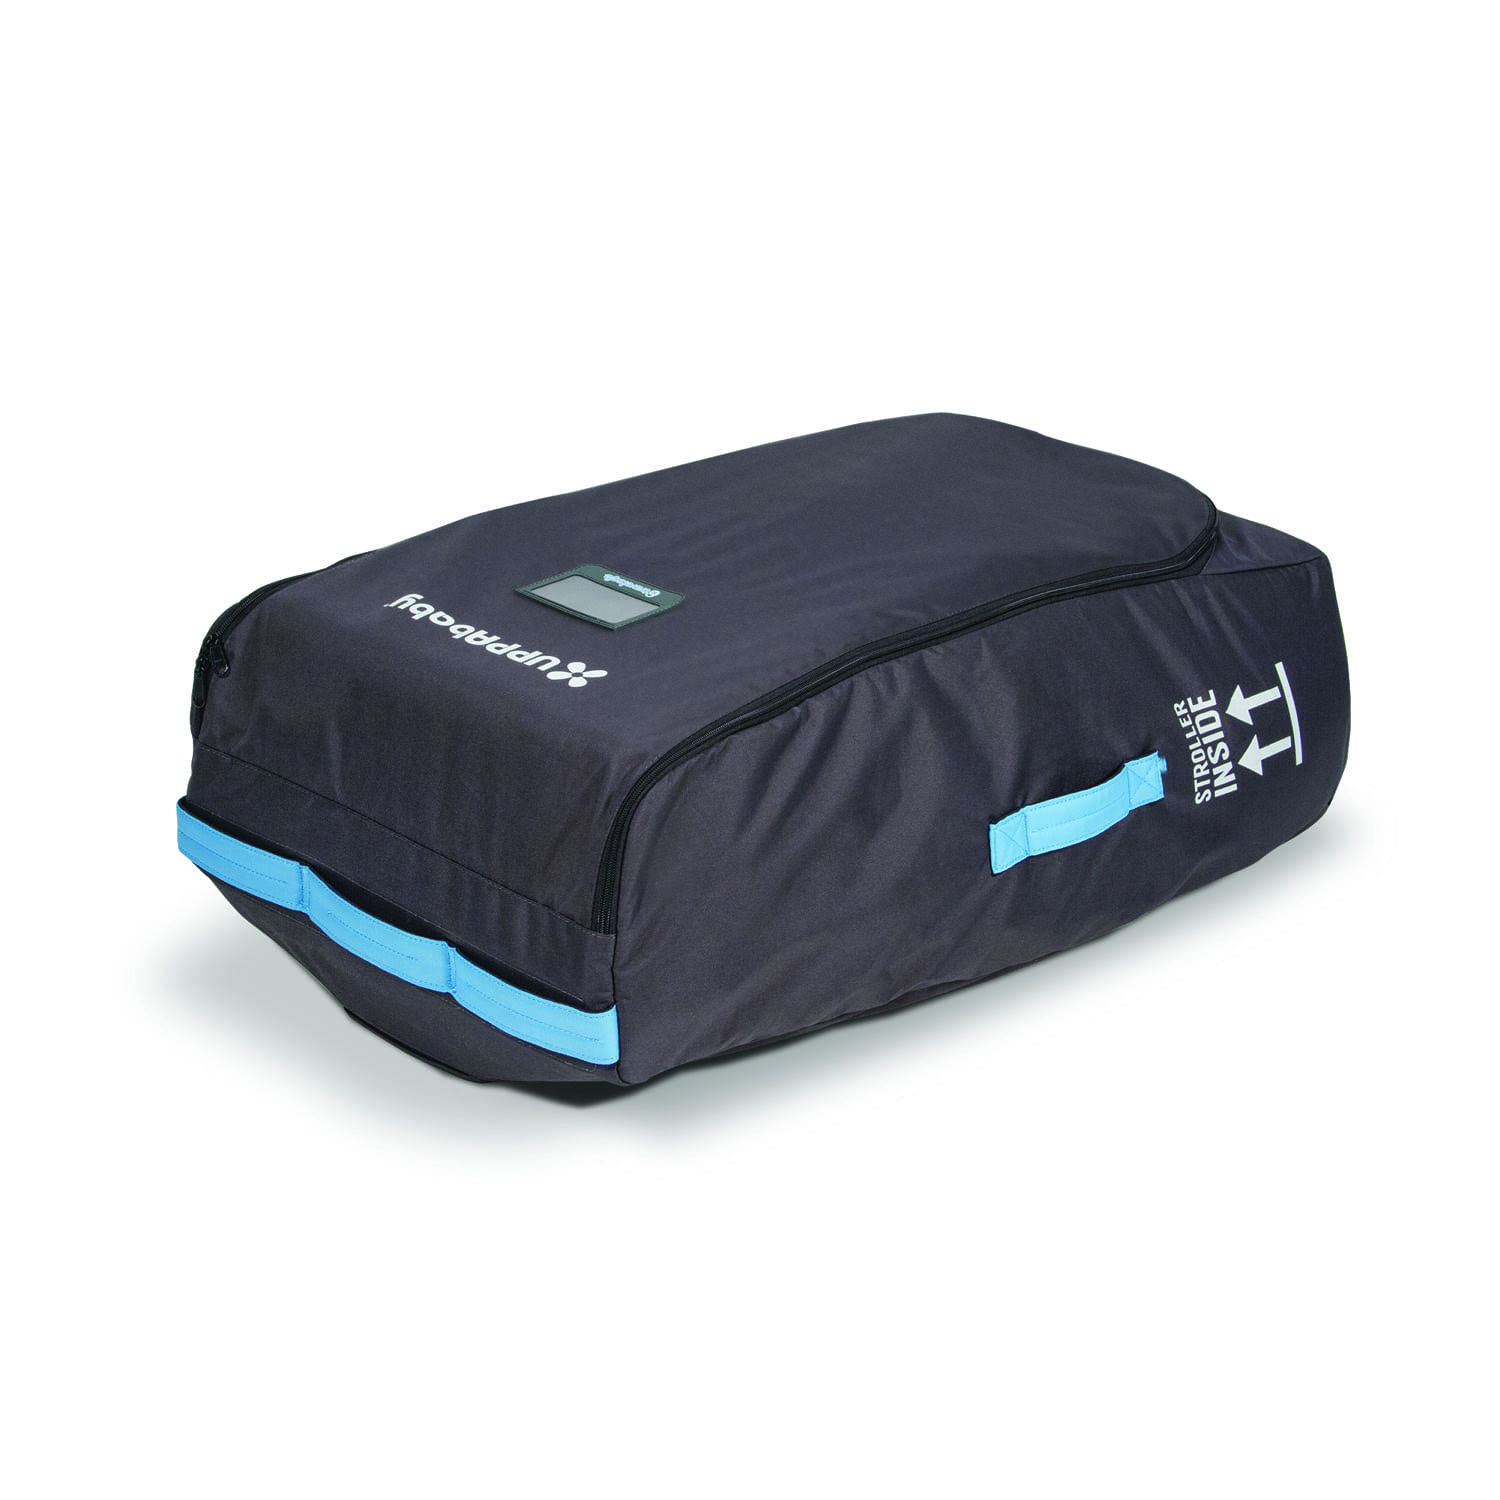 UPPABaby VISTA Travel Bag for RumbleSeat or Carry Cot product image